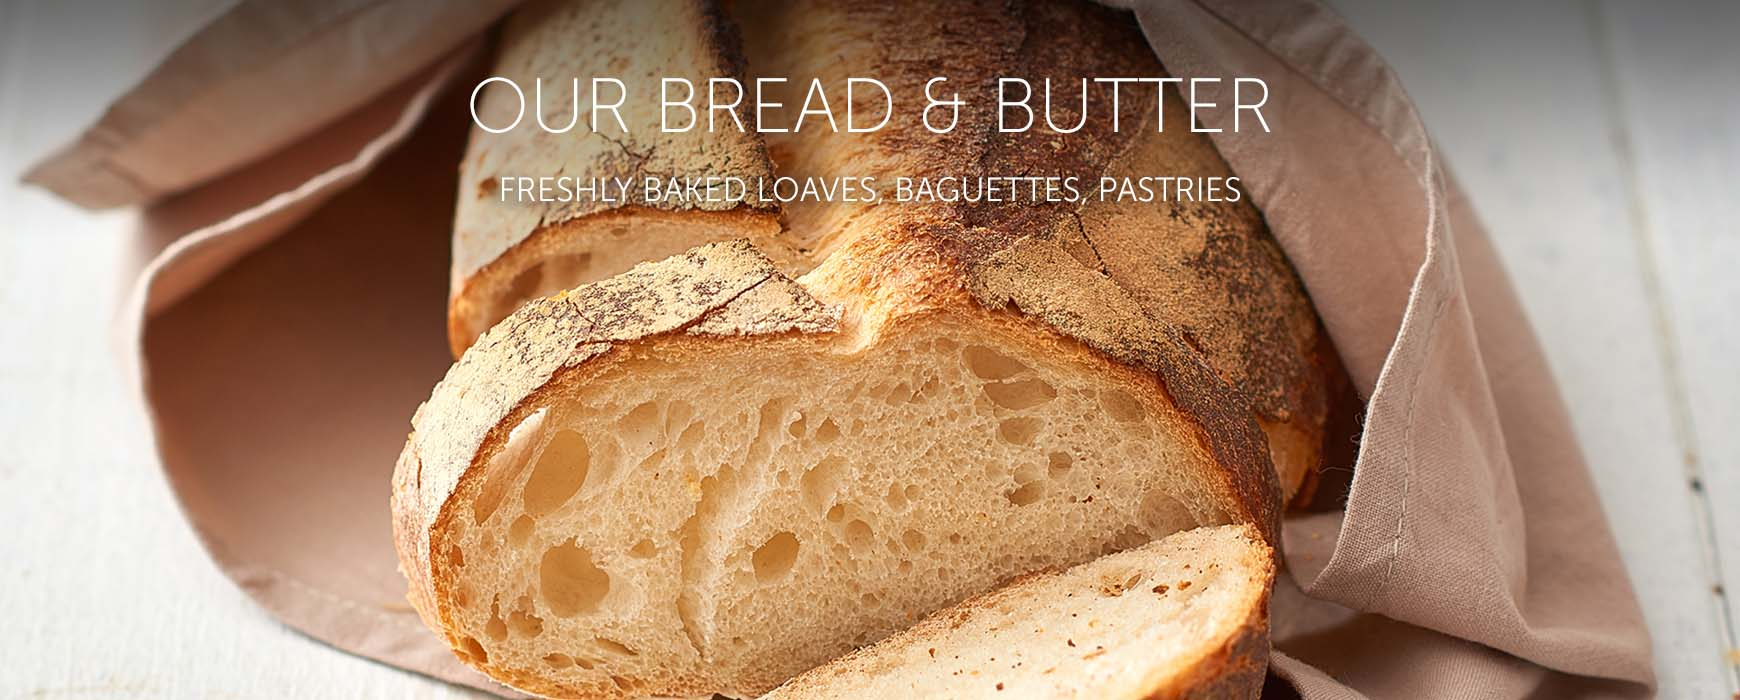 Our Bread & Butter